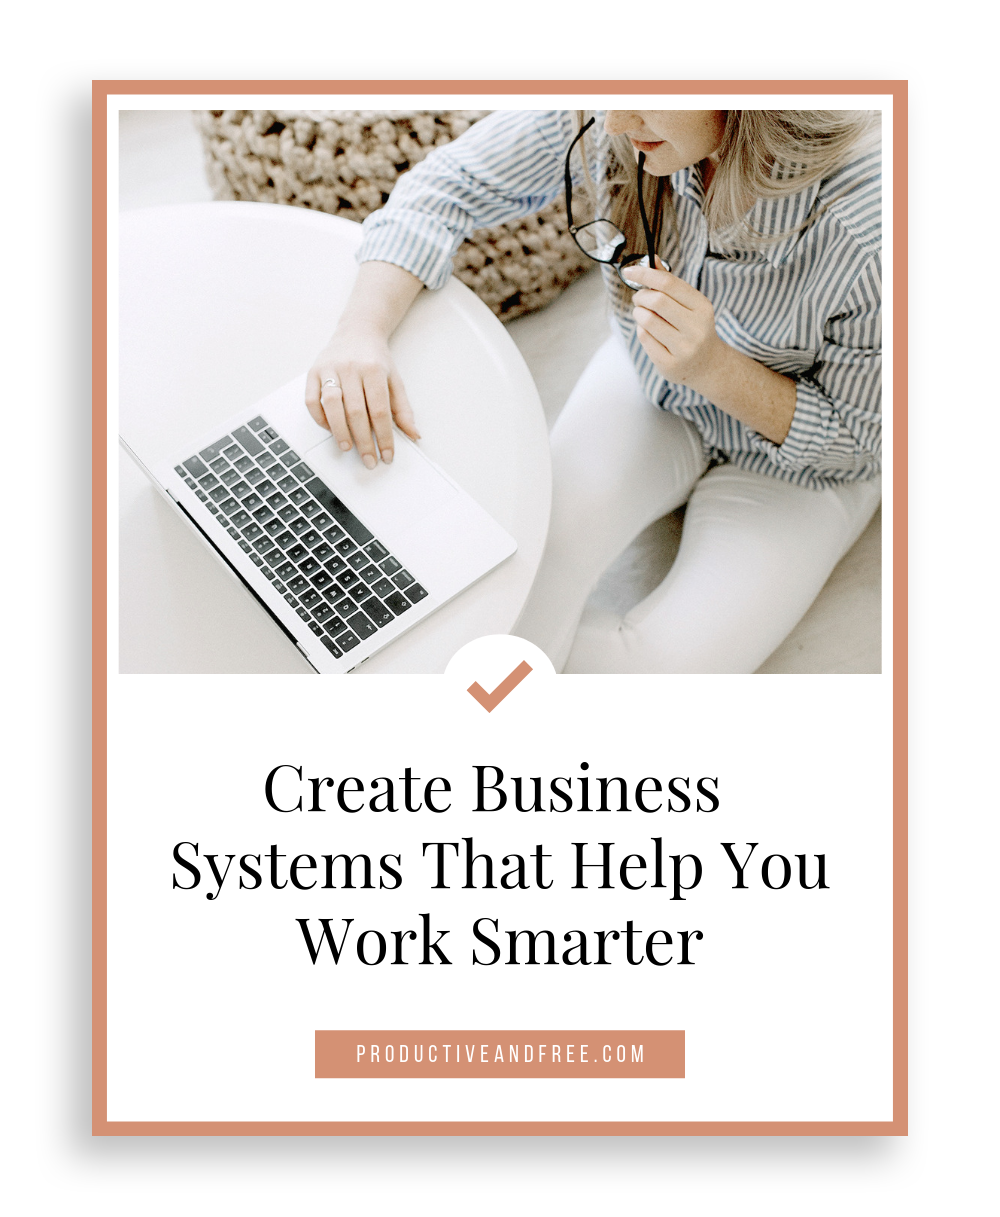 Creating Business Systems | ProductiveandFree.com